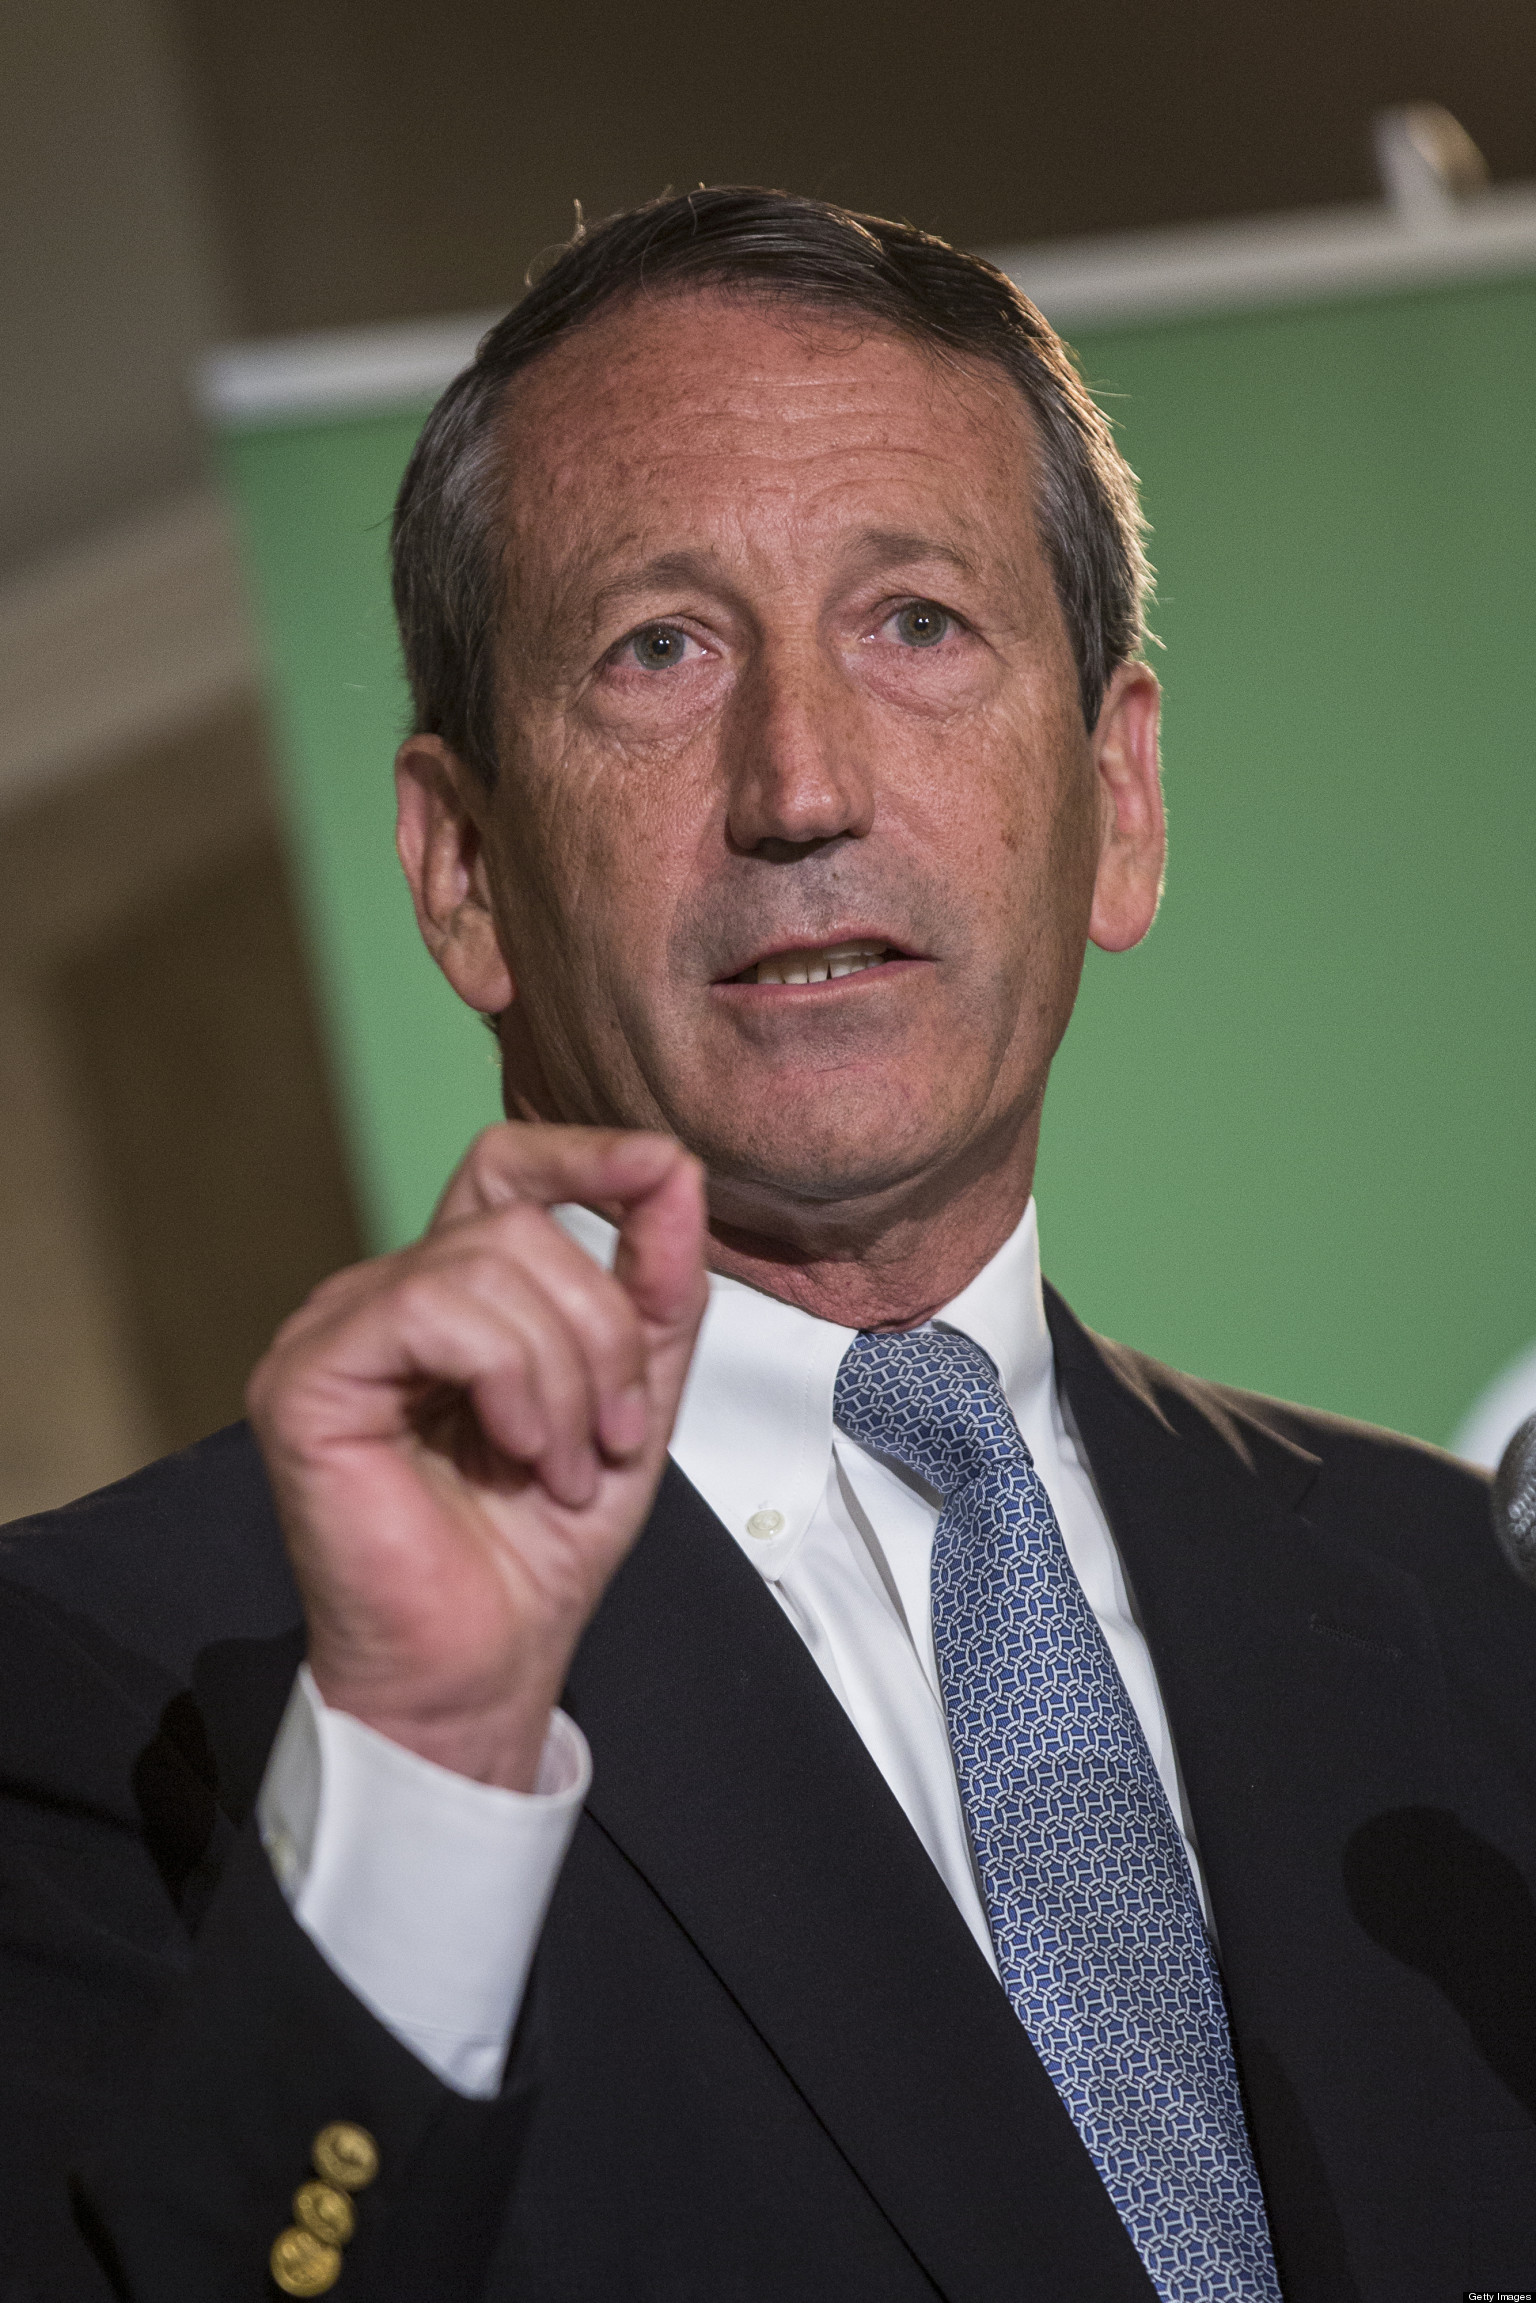 http://i.huffpost.com/gen/1140402/images/o-MARK-SANFORD-SWORN-IN-facebook.jpg